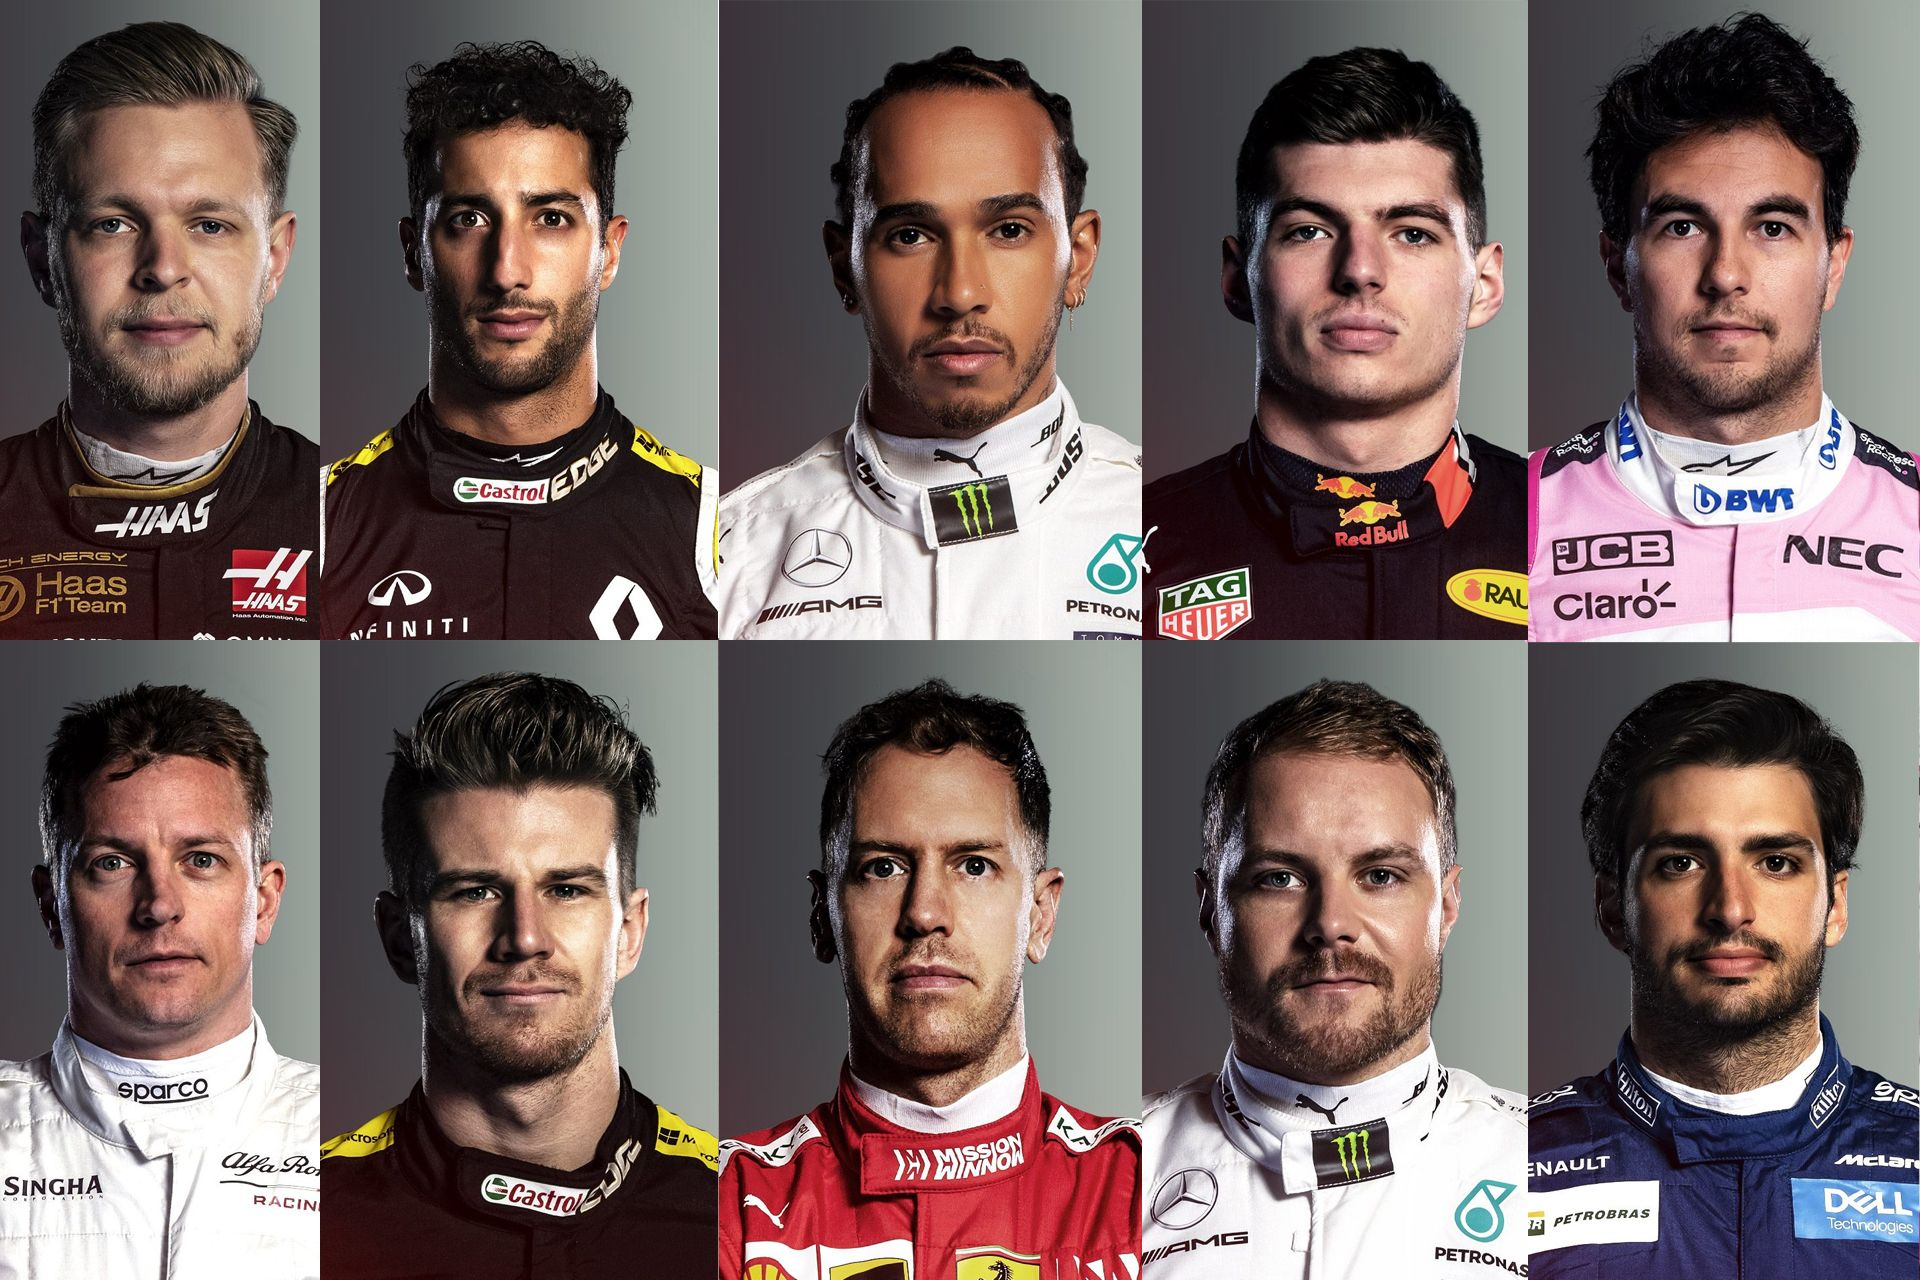 Get To Know This Year's Formula One Drivers